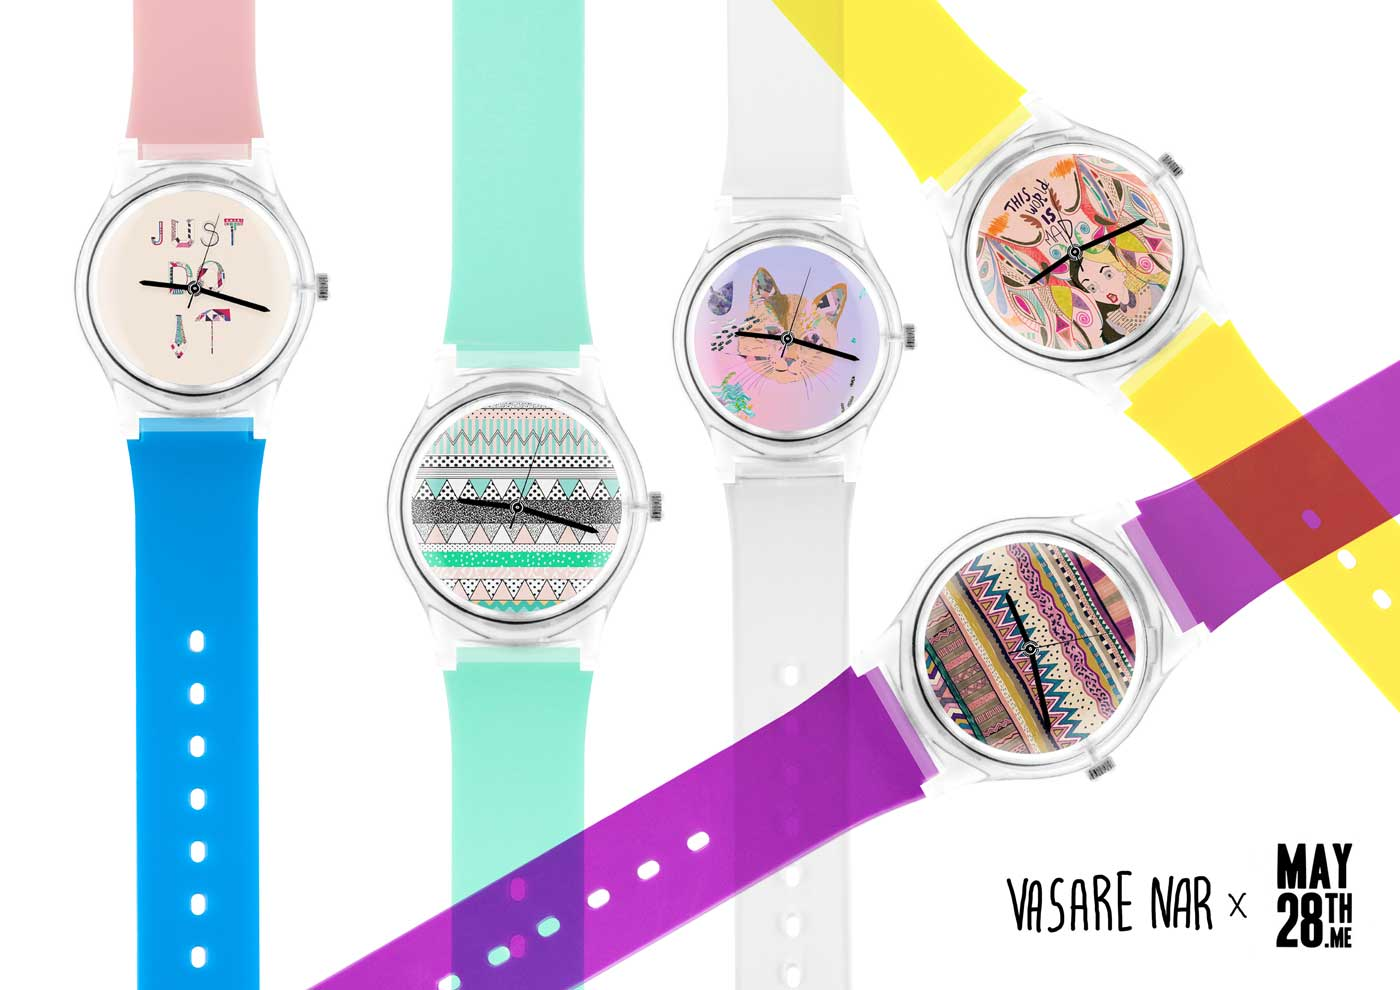 Watch design collaboration style fashion trend magazine cool watches